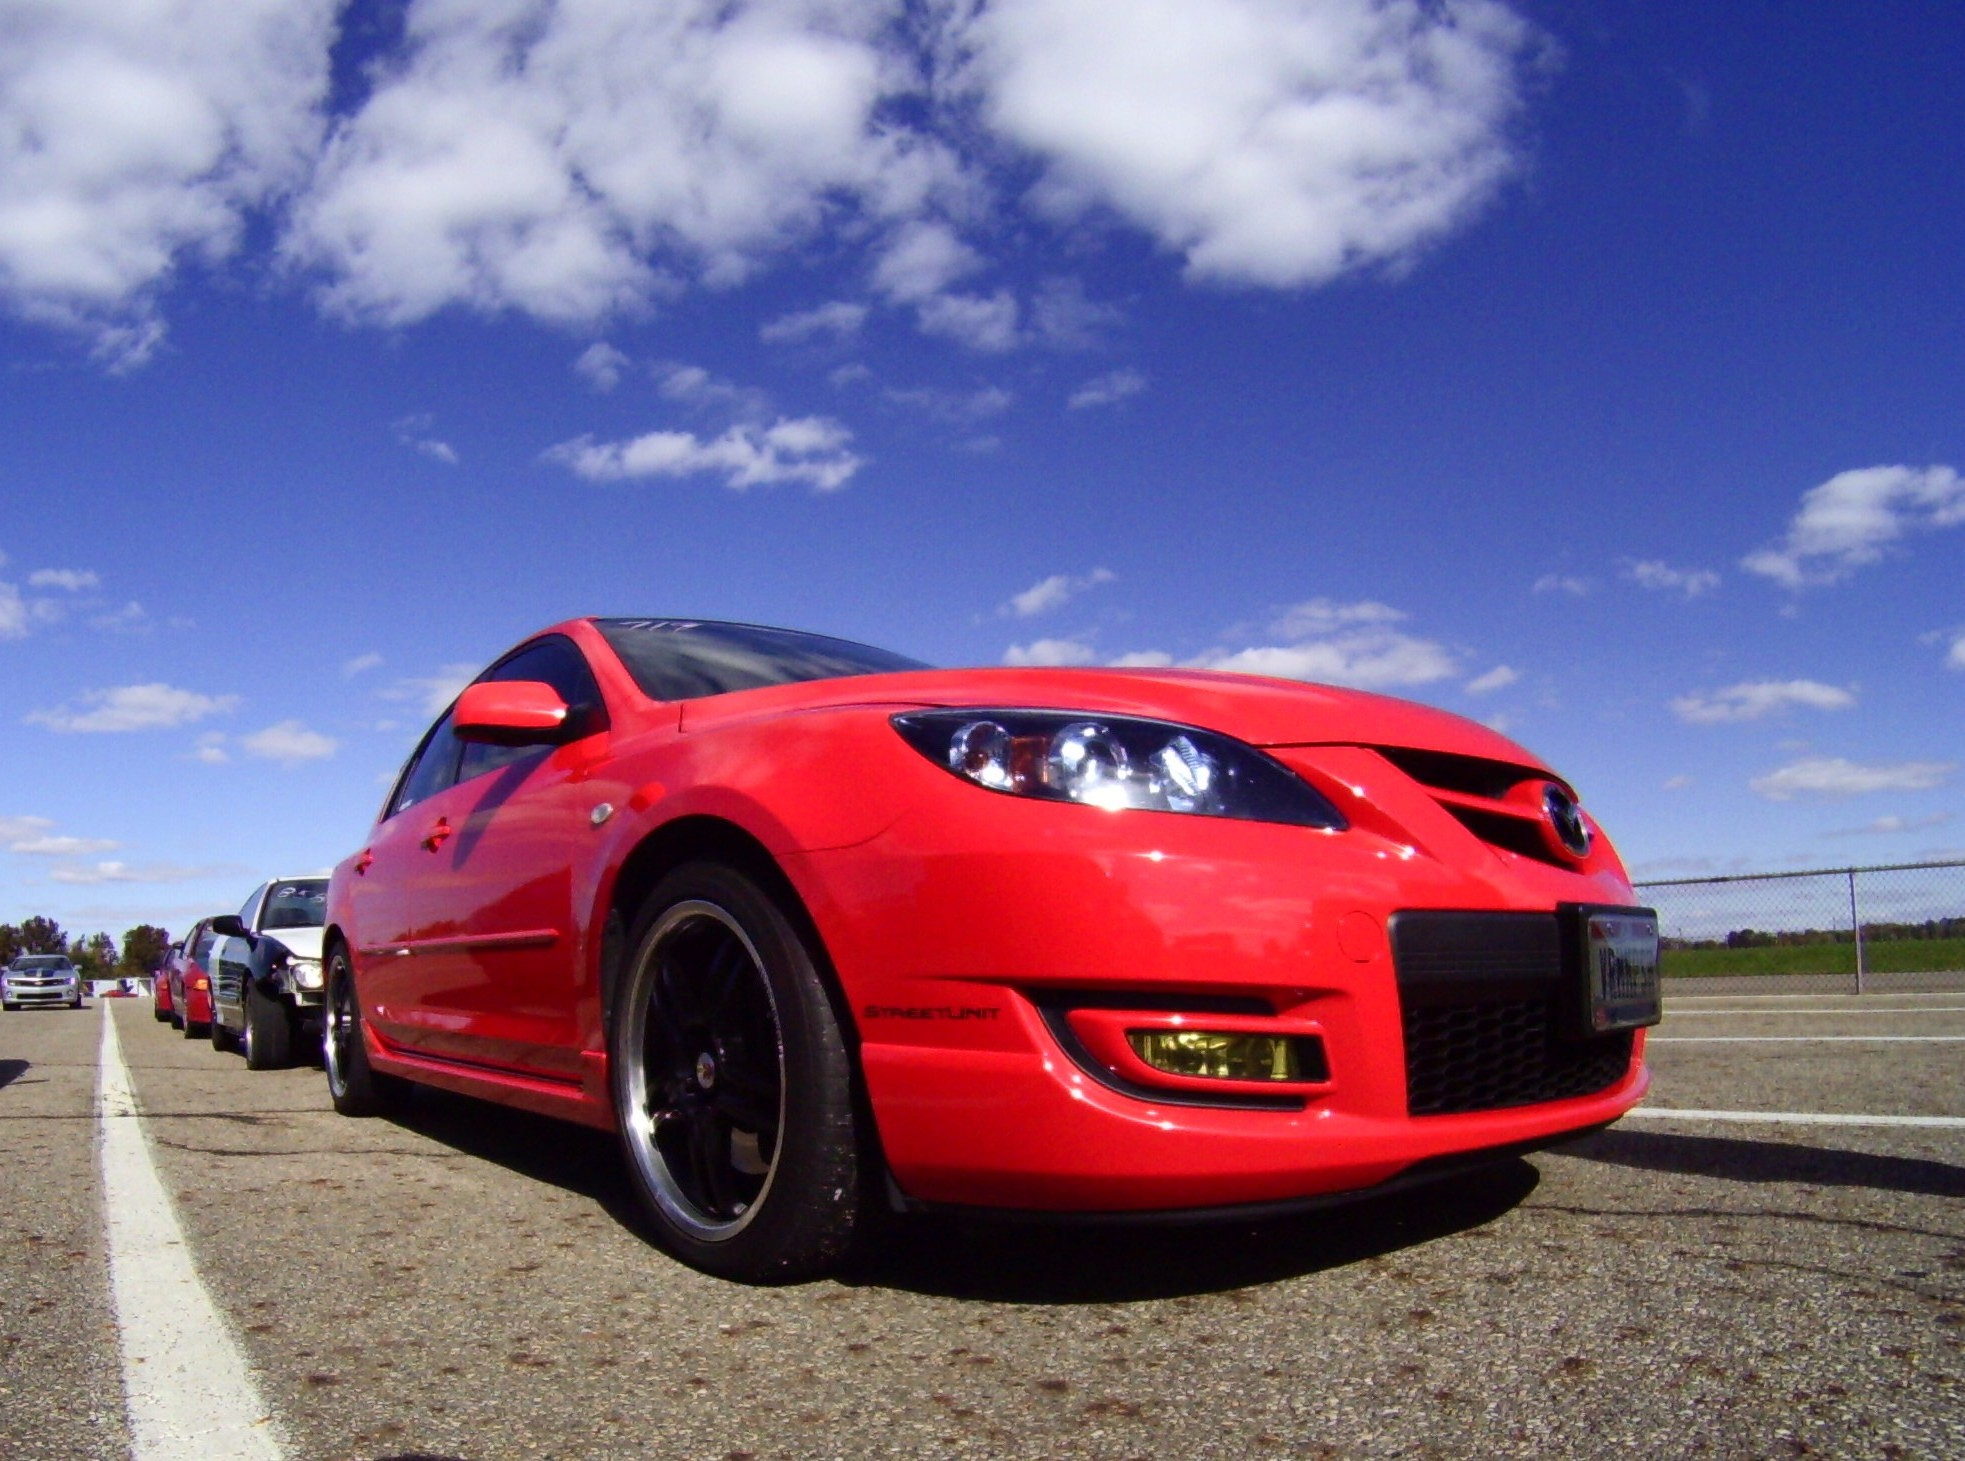 2007 mazda 3 speed 3 1 4 mile trap speeds 0 60. Black Bedroom Furniture Sets. Home Design Ideas